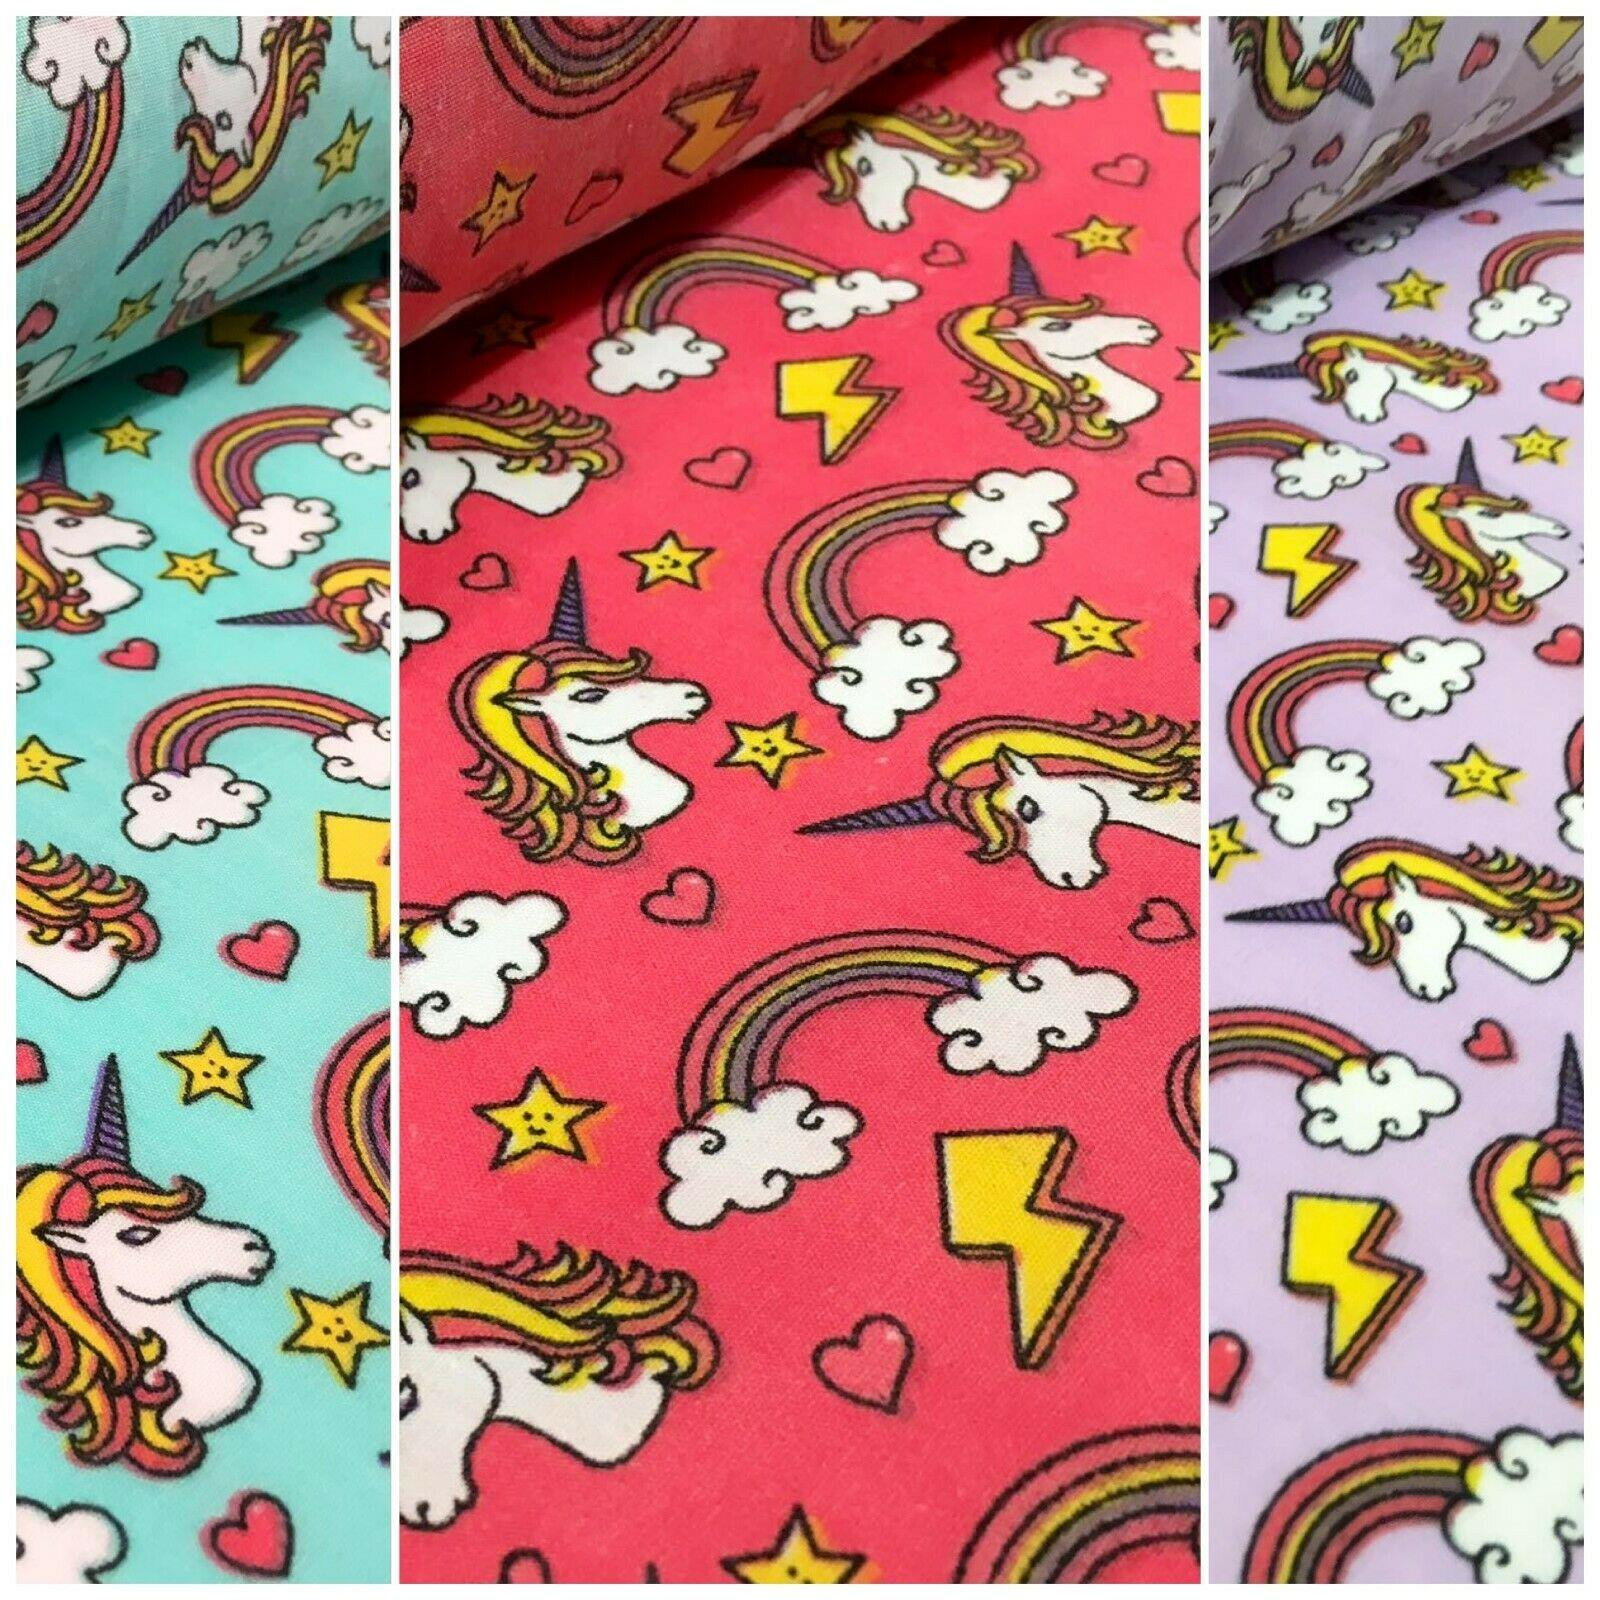 Rainbow Unicorns Mythical Polycotton Printed Fabric 110 cm Wide MH1166 Mtex